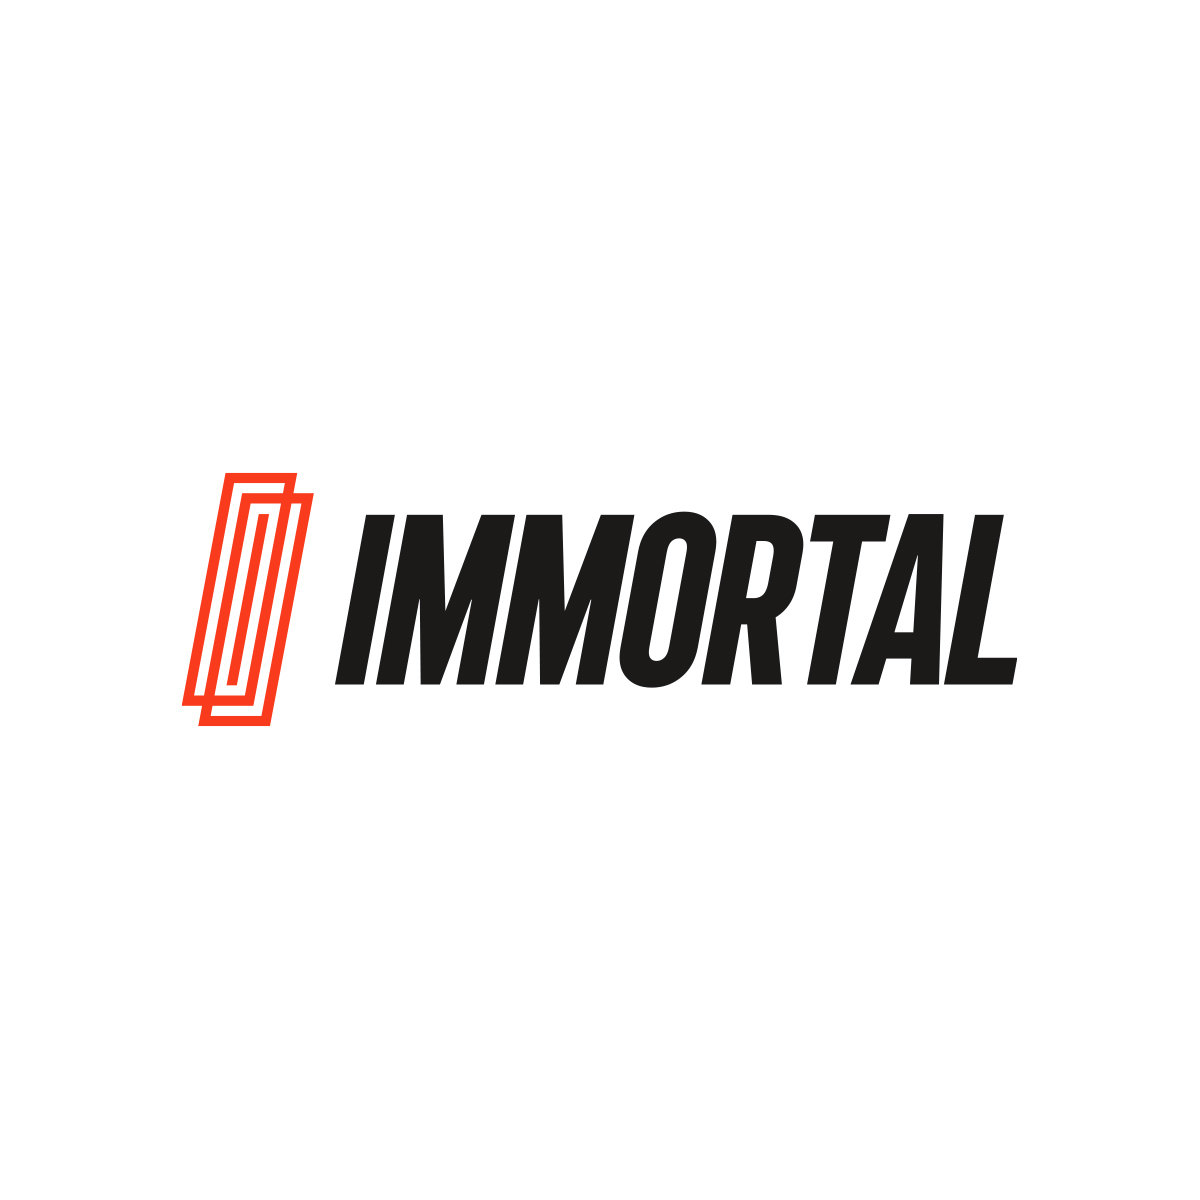 Various-Logos_immortal